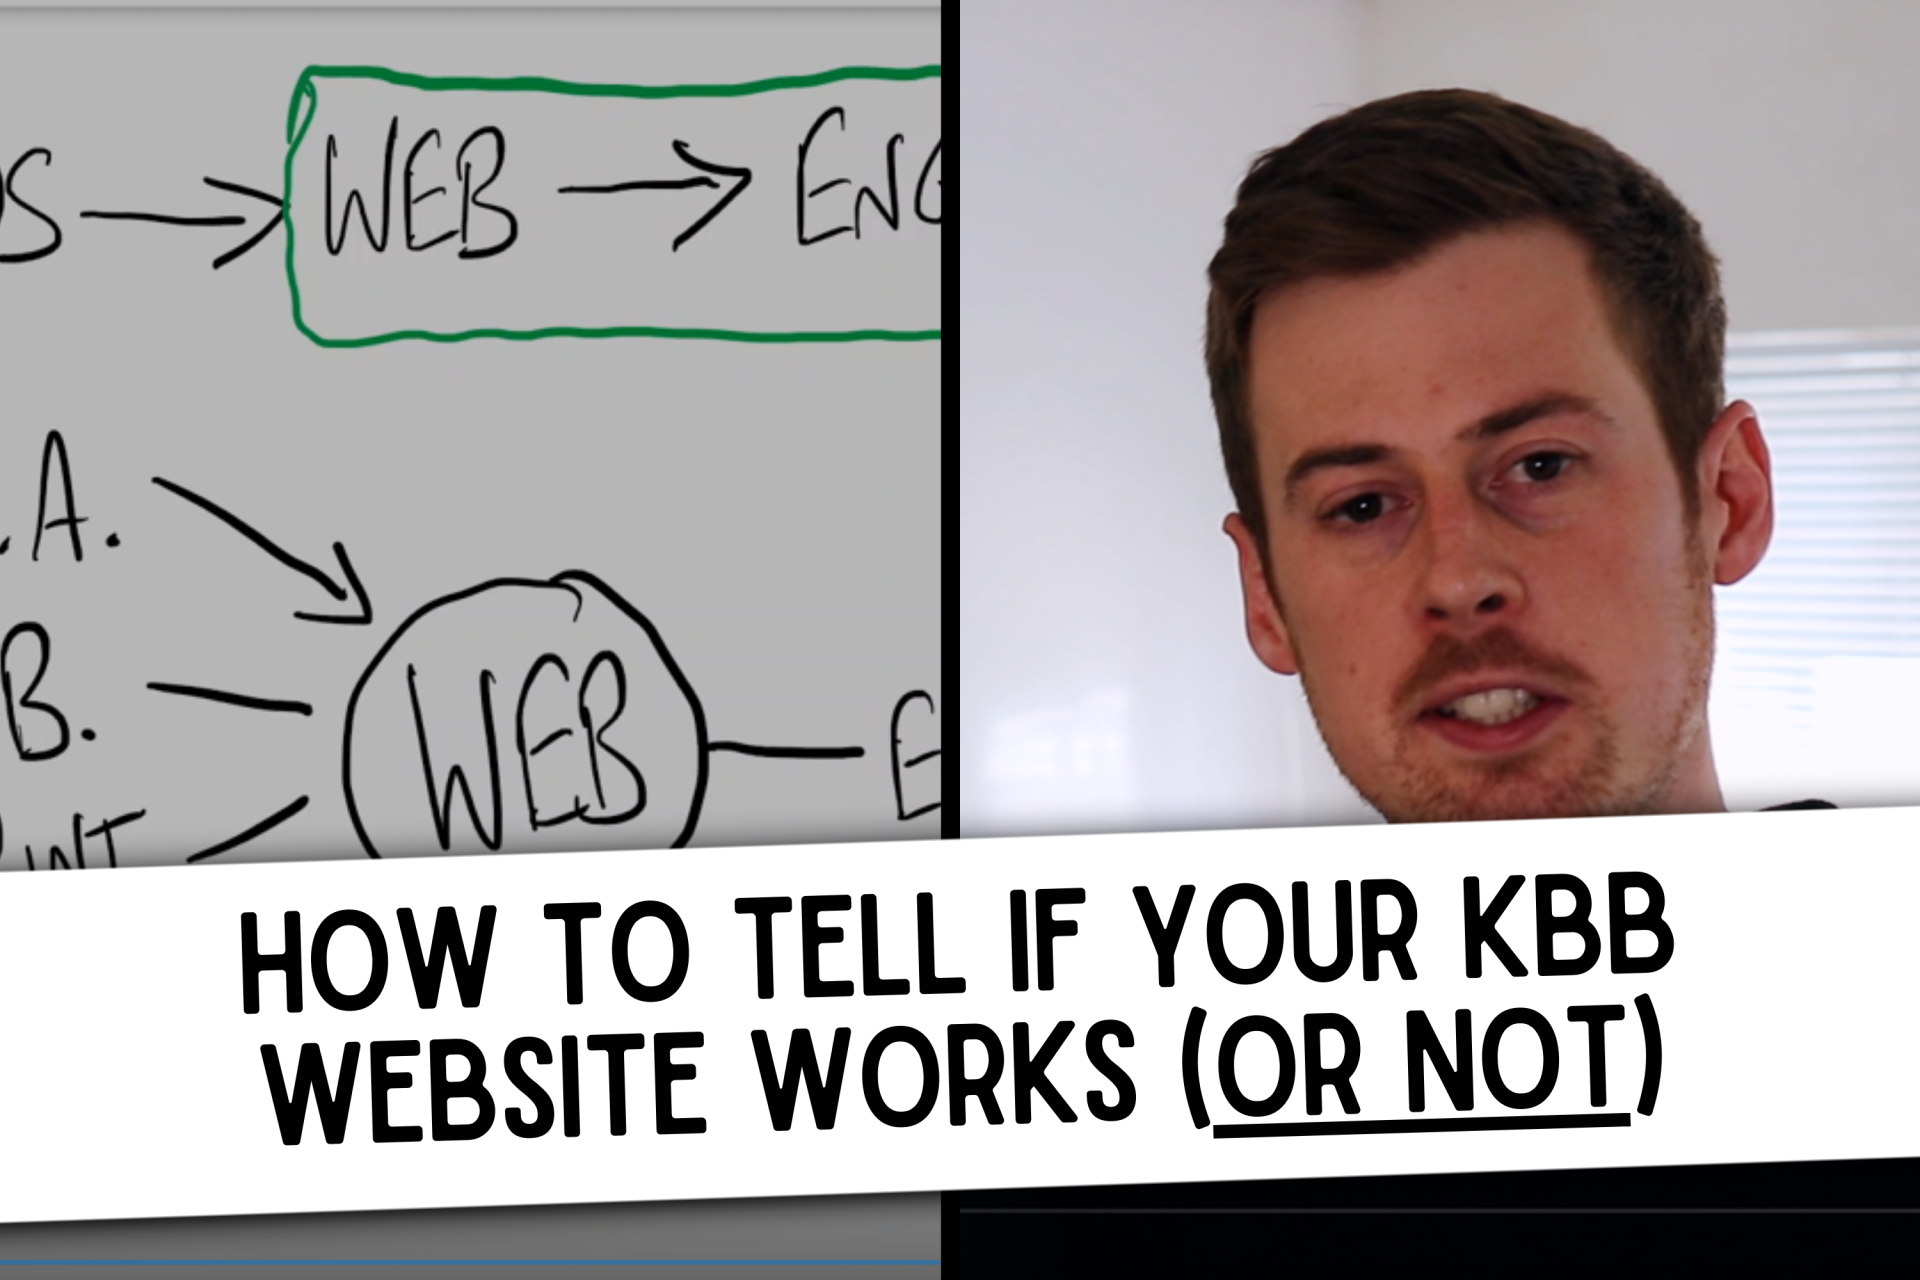 How To tell if your kbb website works